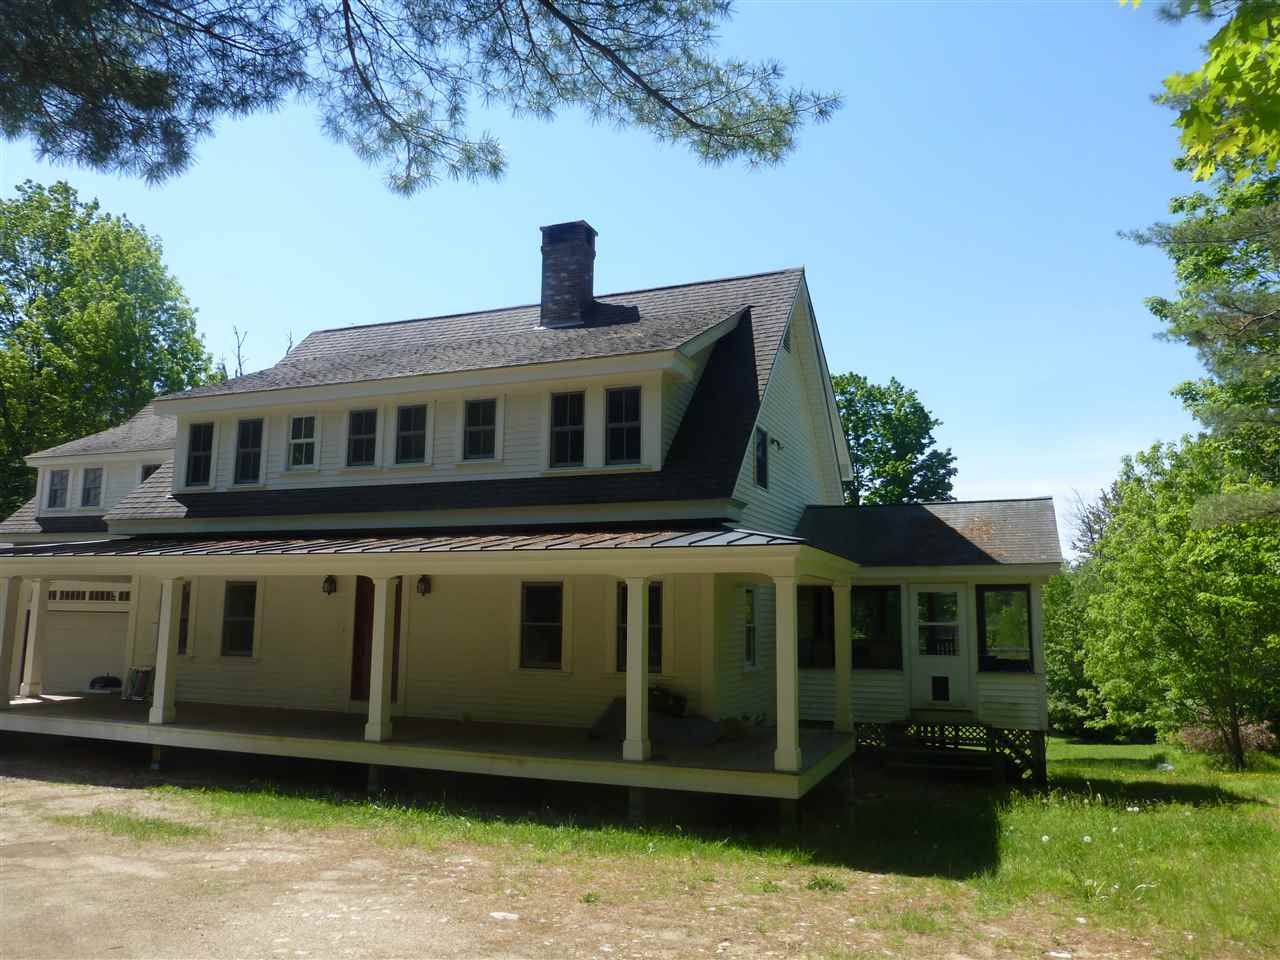 VILLAGE OF NORTH SANDWICH IN TOWN OF SANDWICH NHHomes for sale